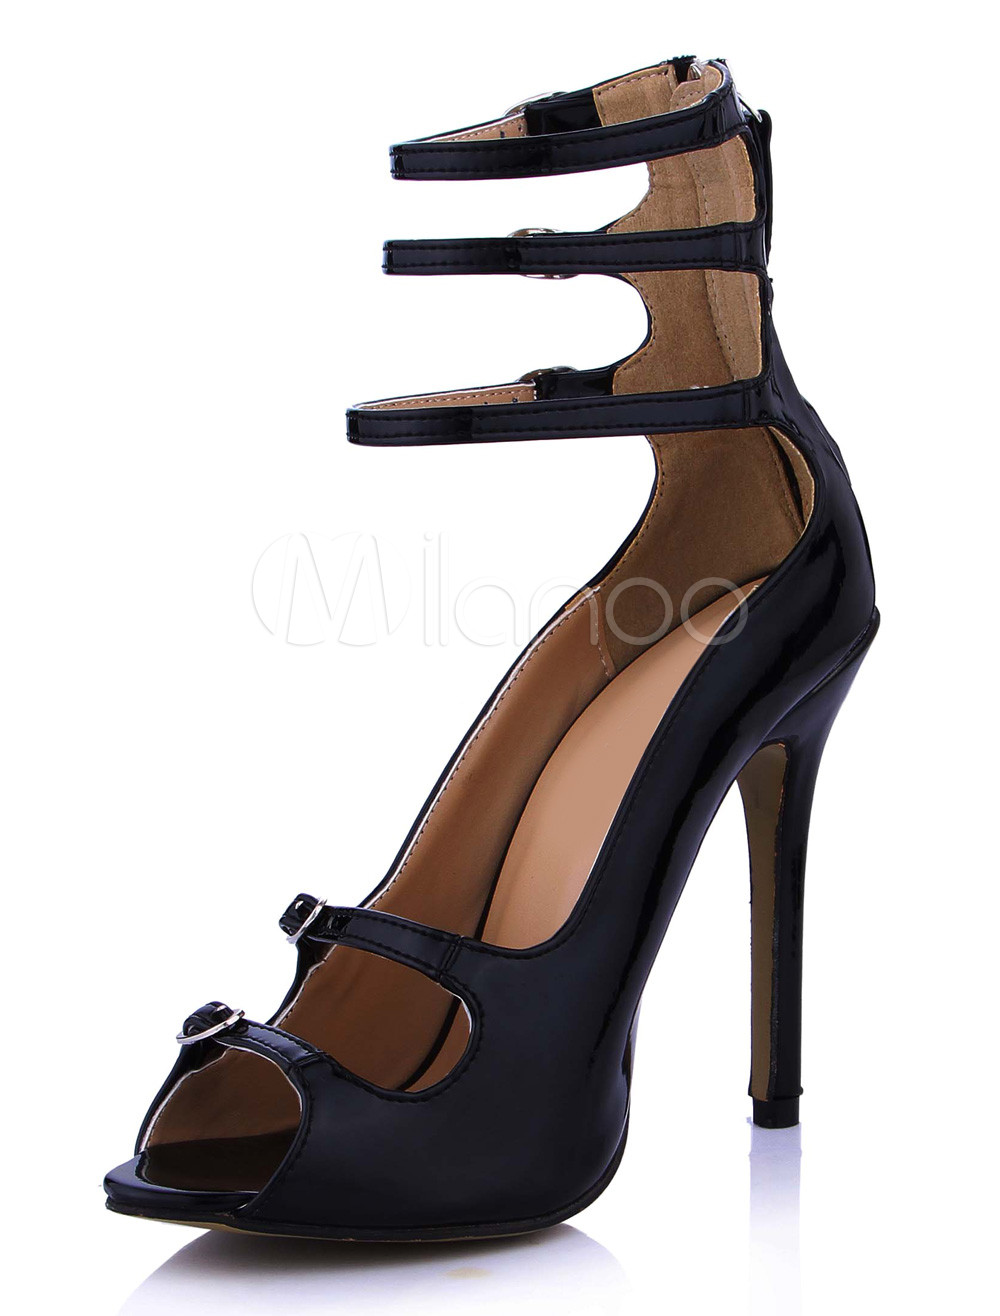 Buy Enticing Black Stiletto Heel Patent PU Upper Dress Sandals For Ladies for $67.49 in Milanoo store